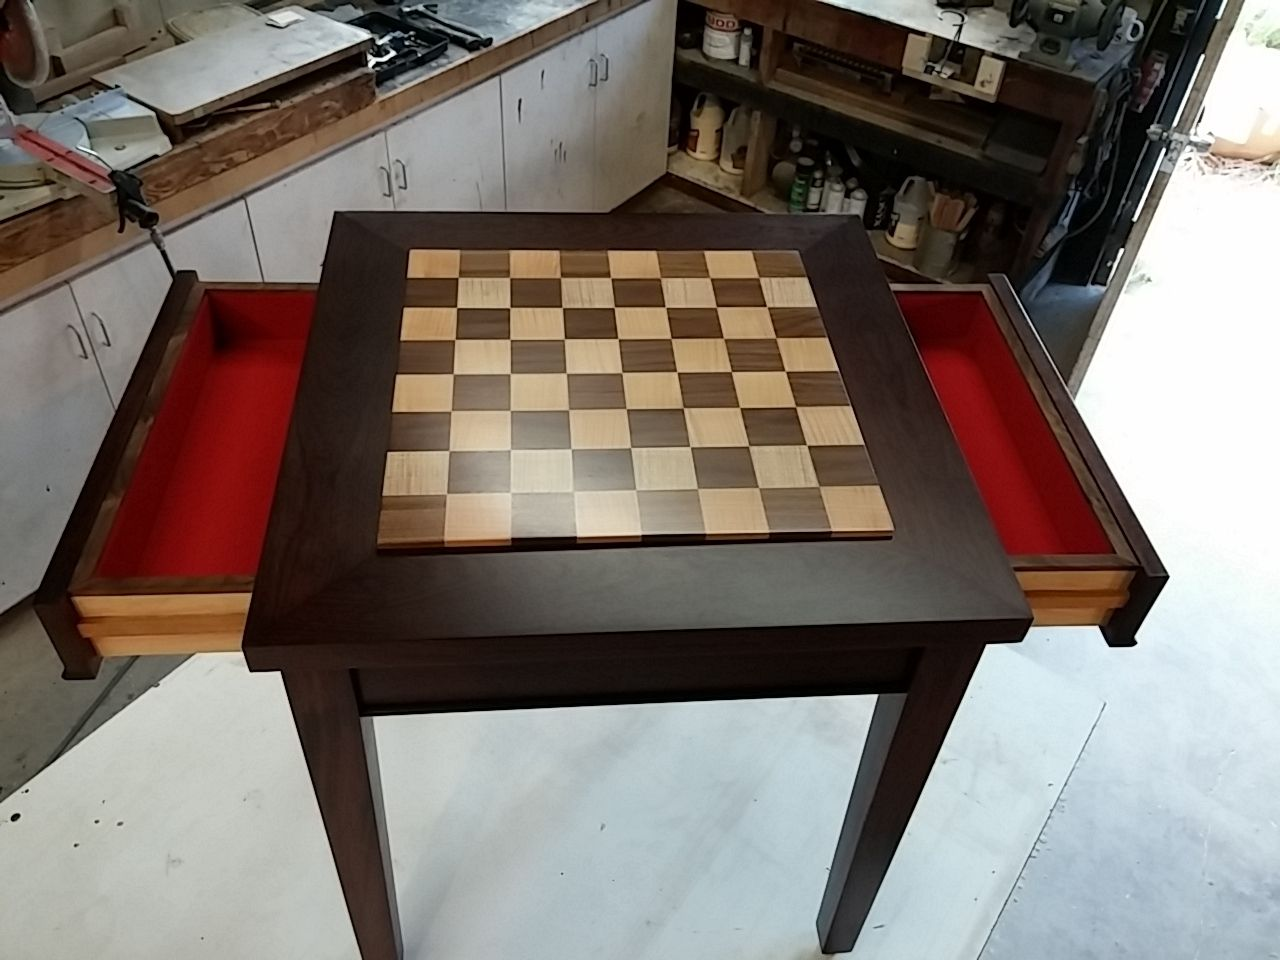 Hand Crafted Custom Exotic Wood Chess Table With Drawers By Puddle Town Woodworking CustomMadecom